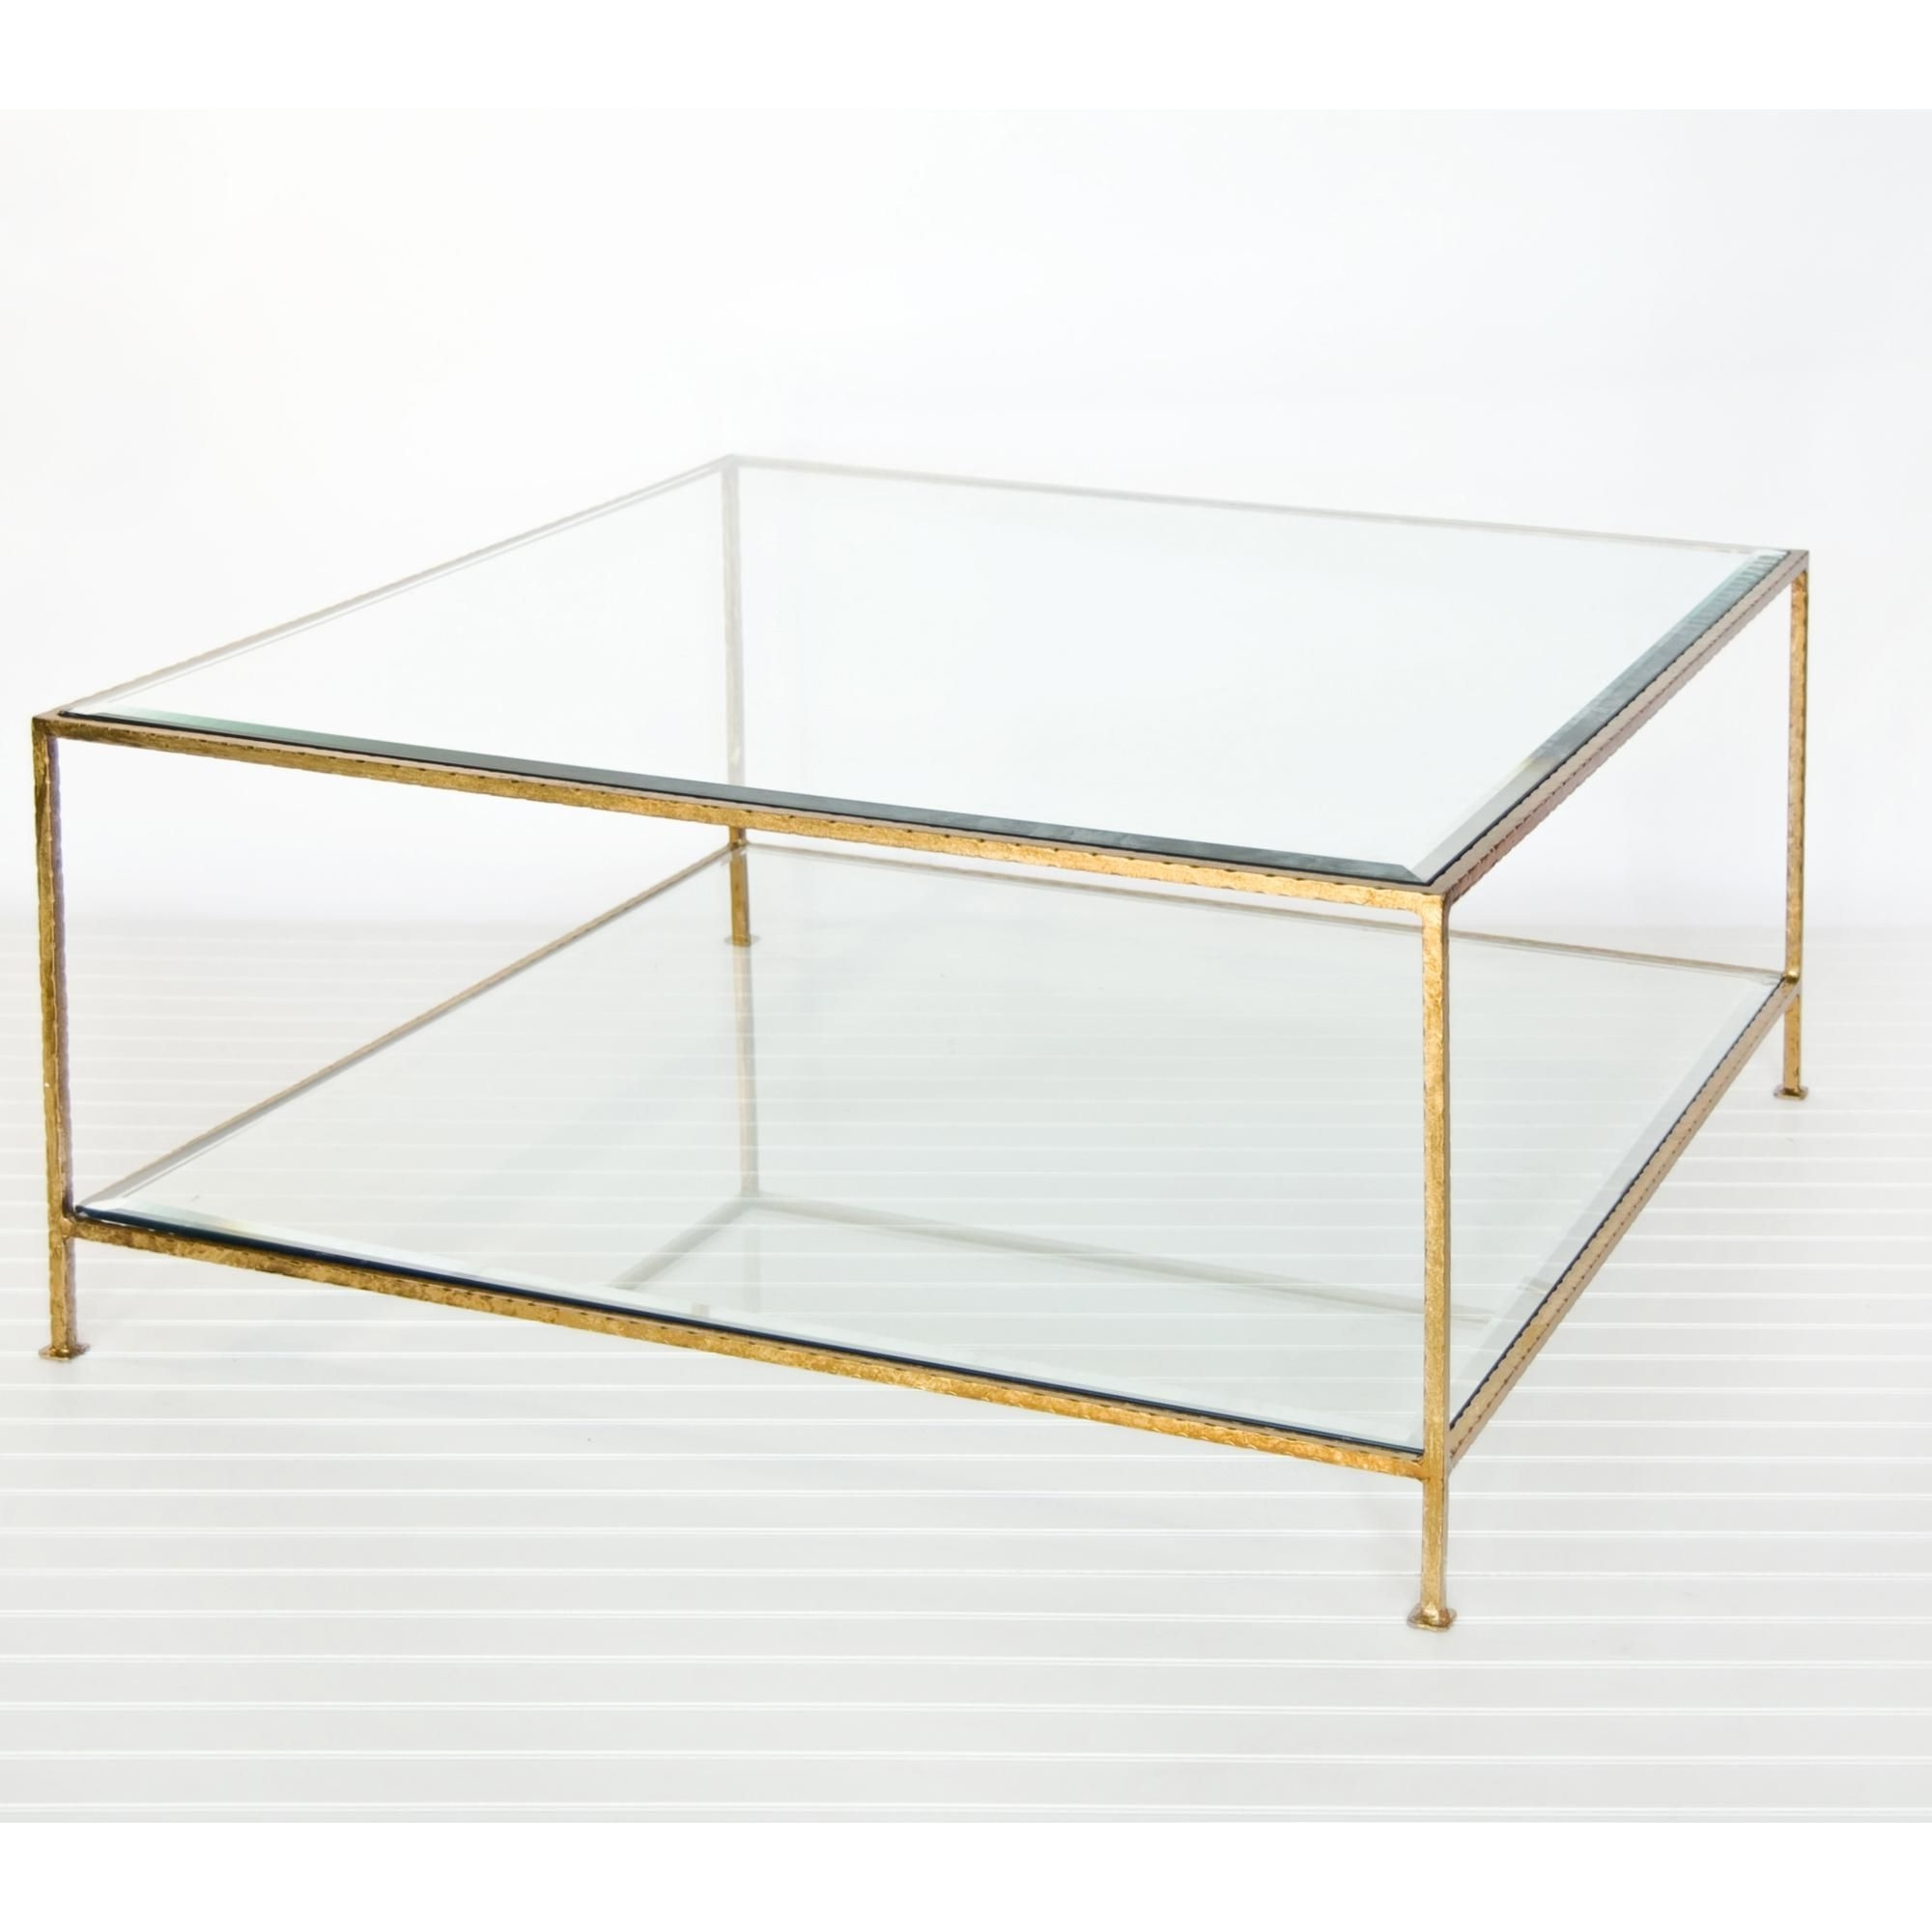 Nest Throughout Recent Acrylic & Brushed Brass Coffee Tables (View 12 of 20)